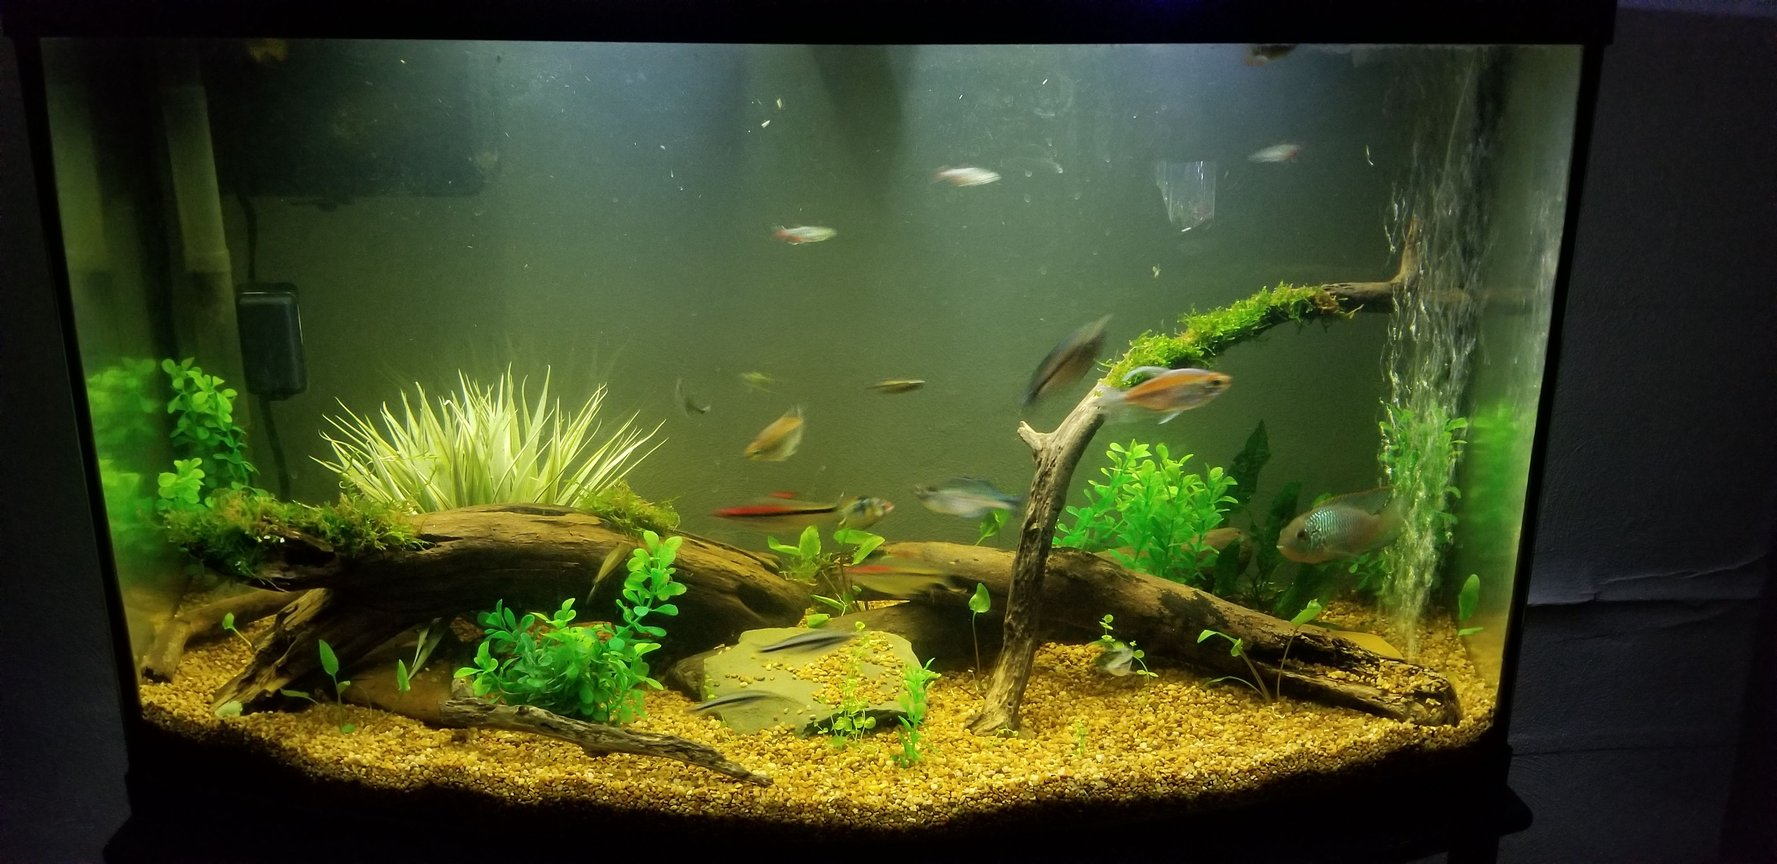 55 gallons planted tank (mostly live plants and fish) - 46 gallon bowfront community tank. Contains both live and artificial plants.